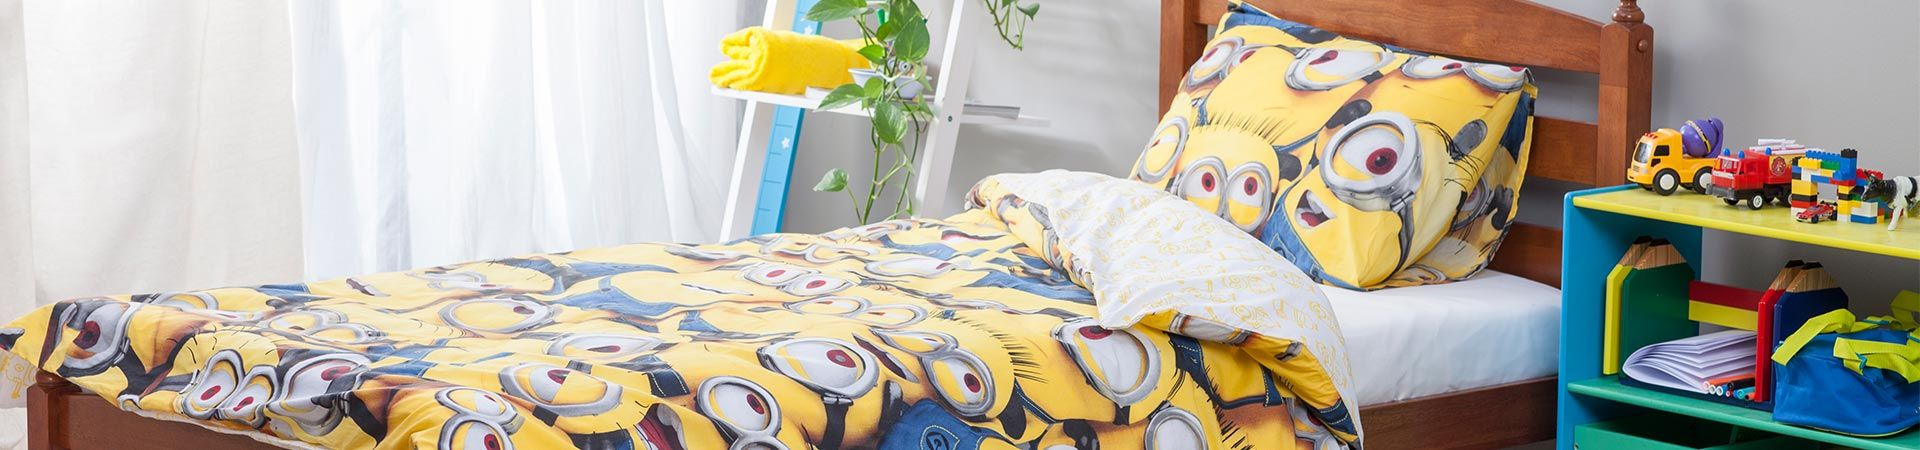 ChildrensBedLinen